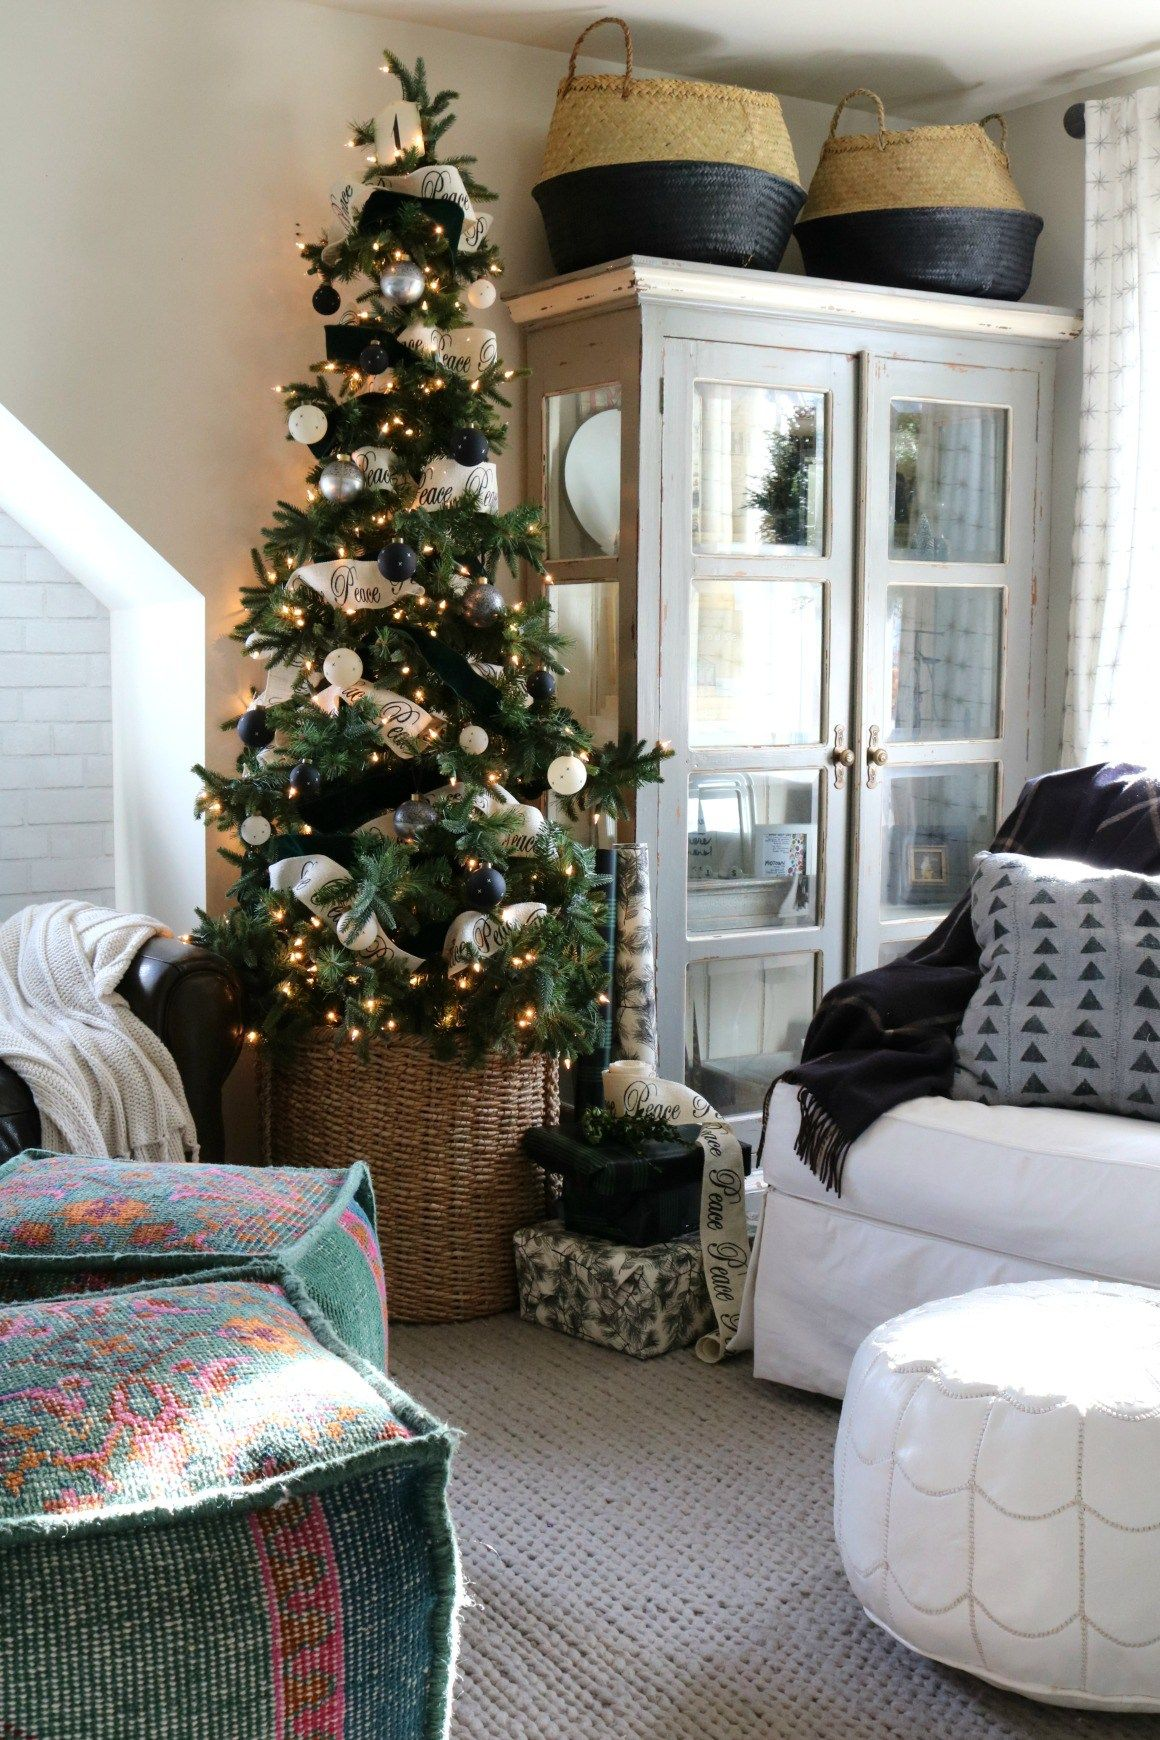 Christmas Ideas in a Small Space- Upstairs Tour